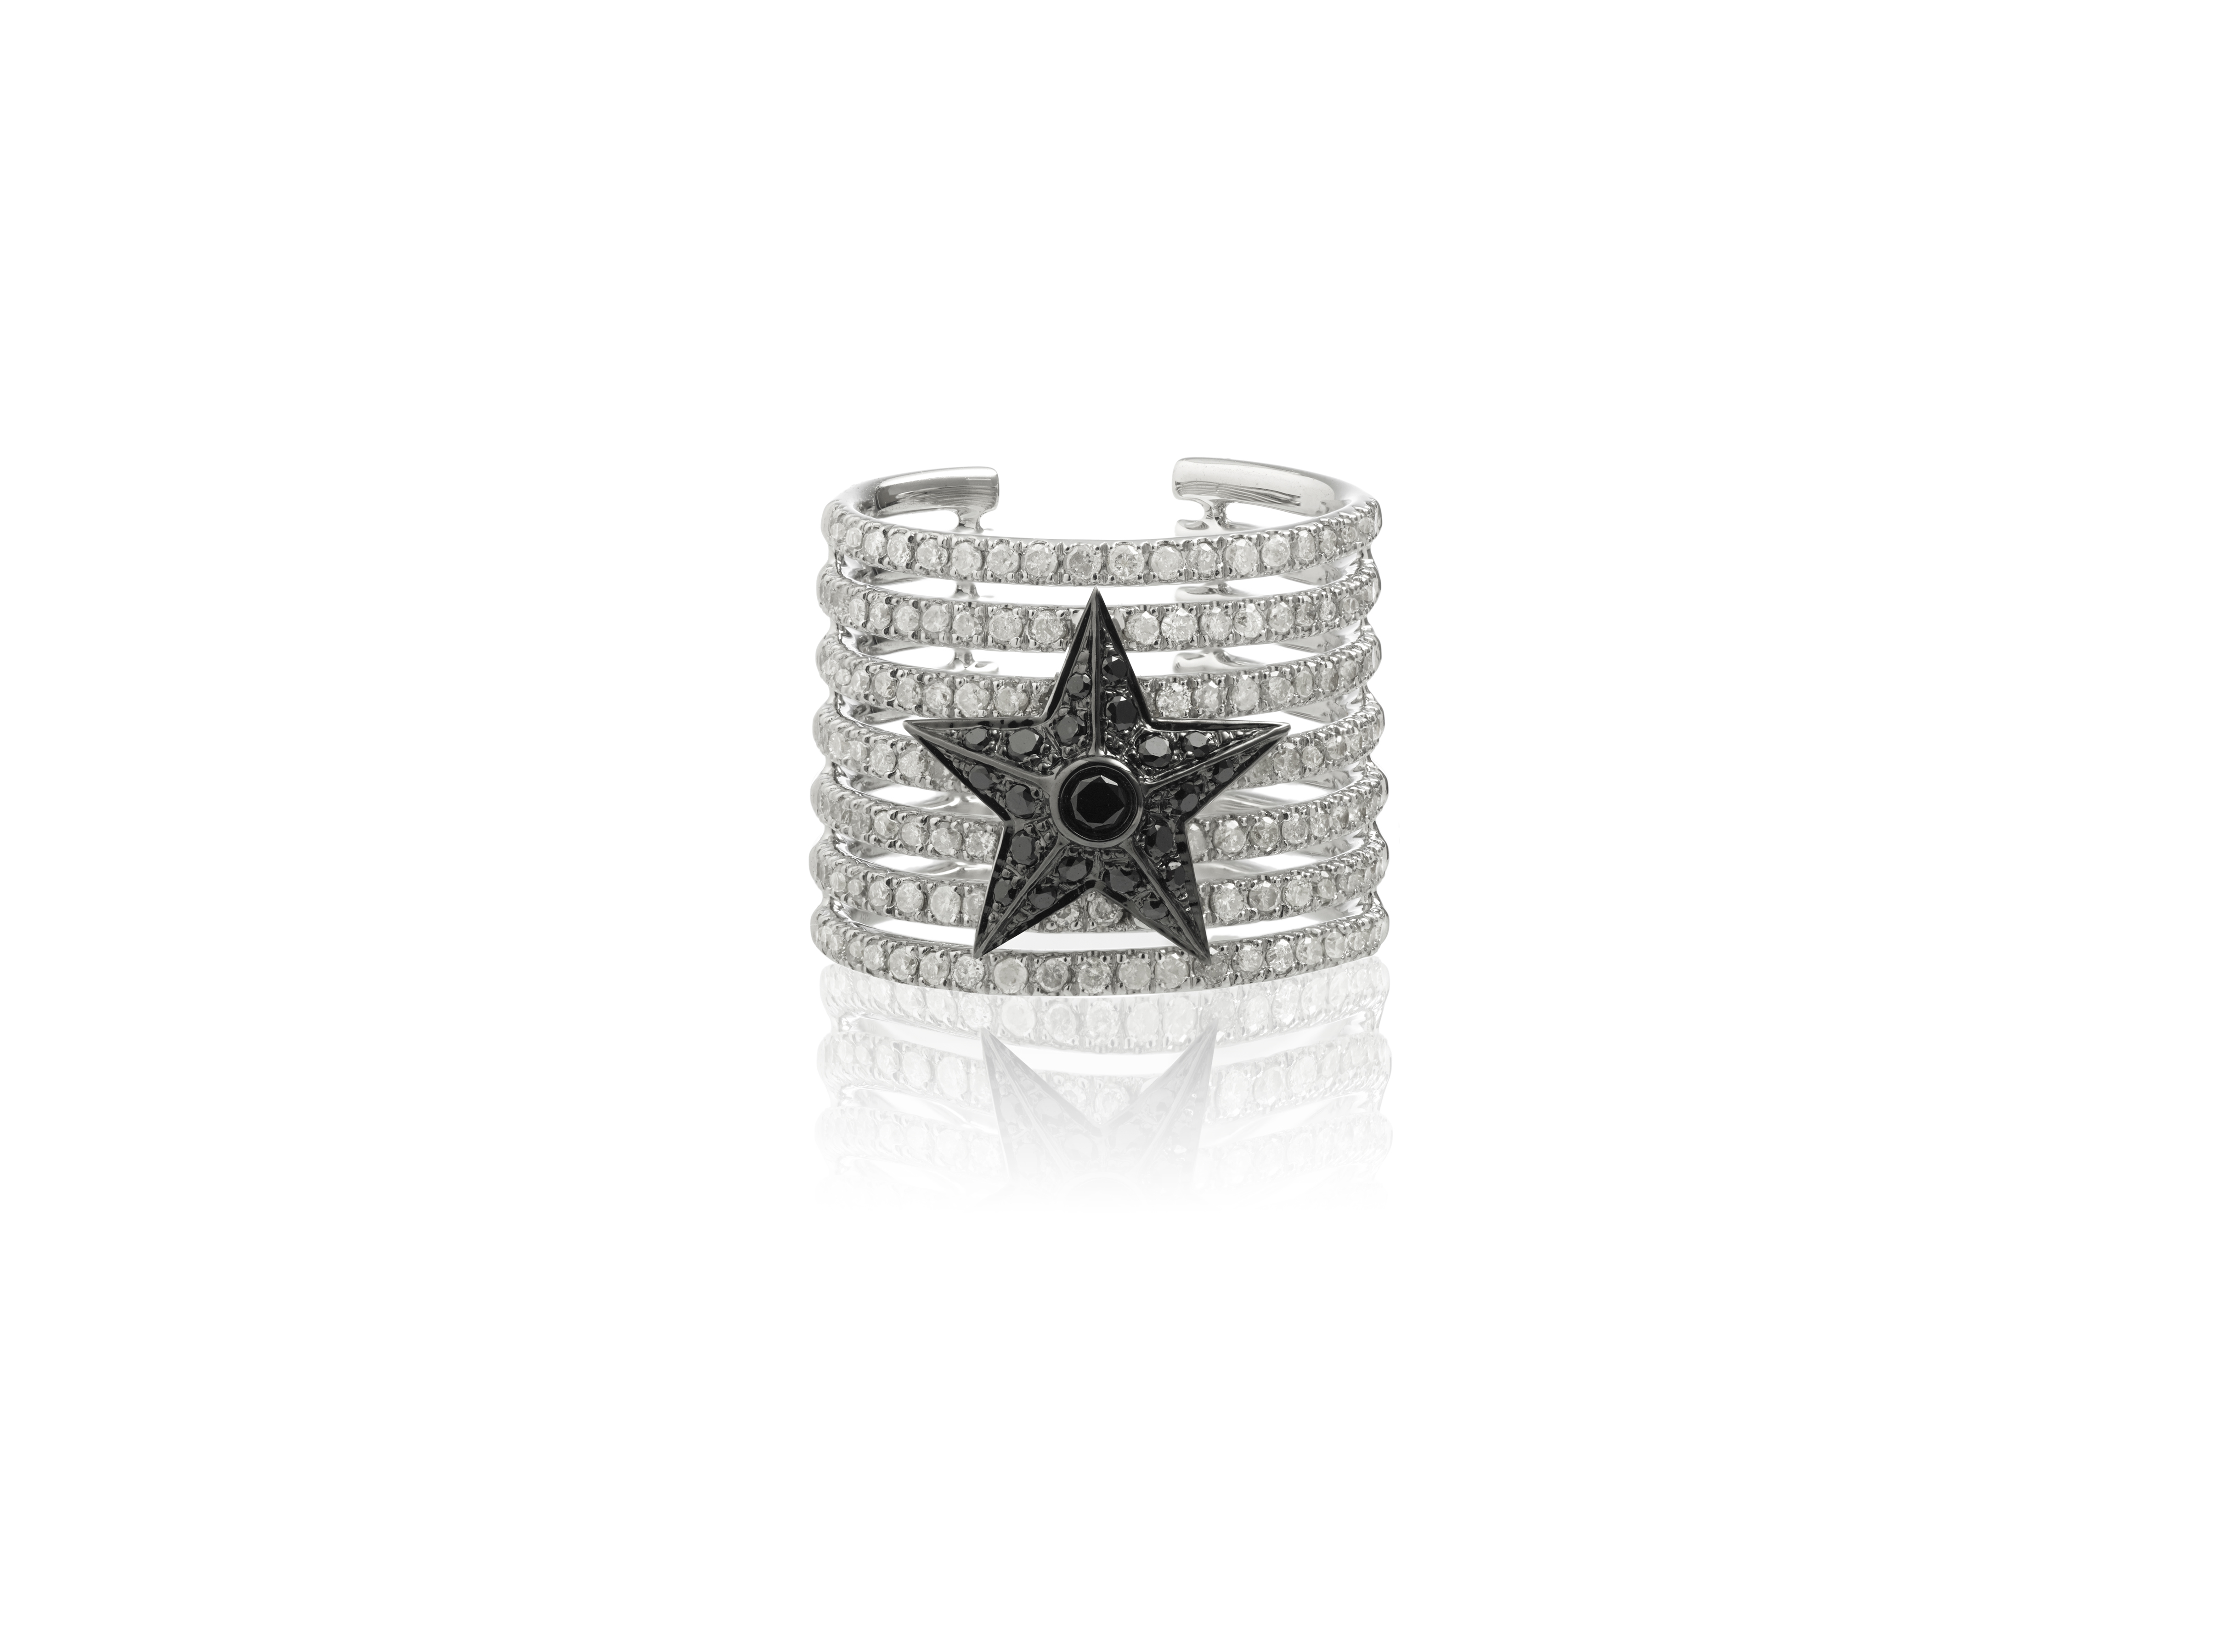 Elise Dray Stripe Star ring mounted on white and black gold with white and black diamonds